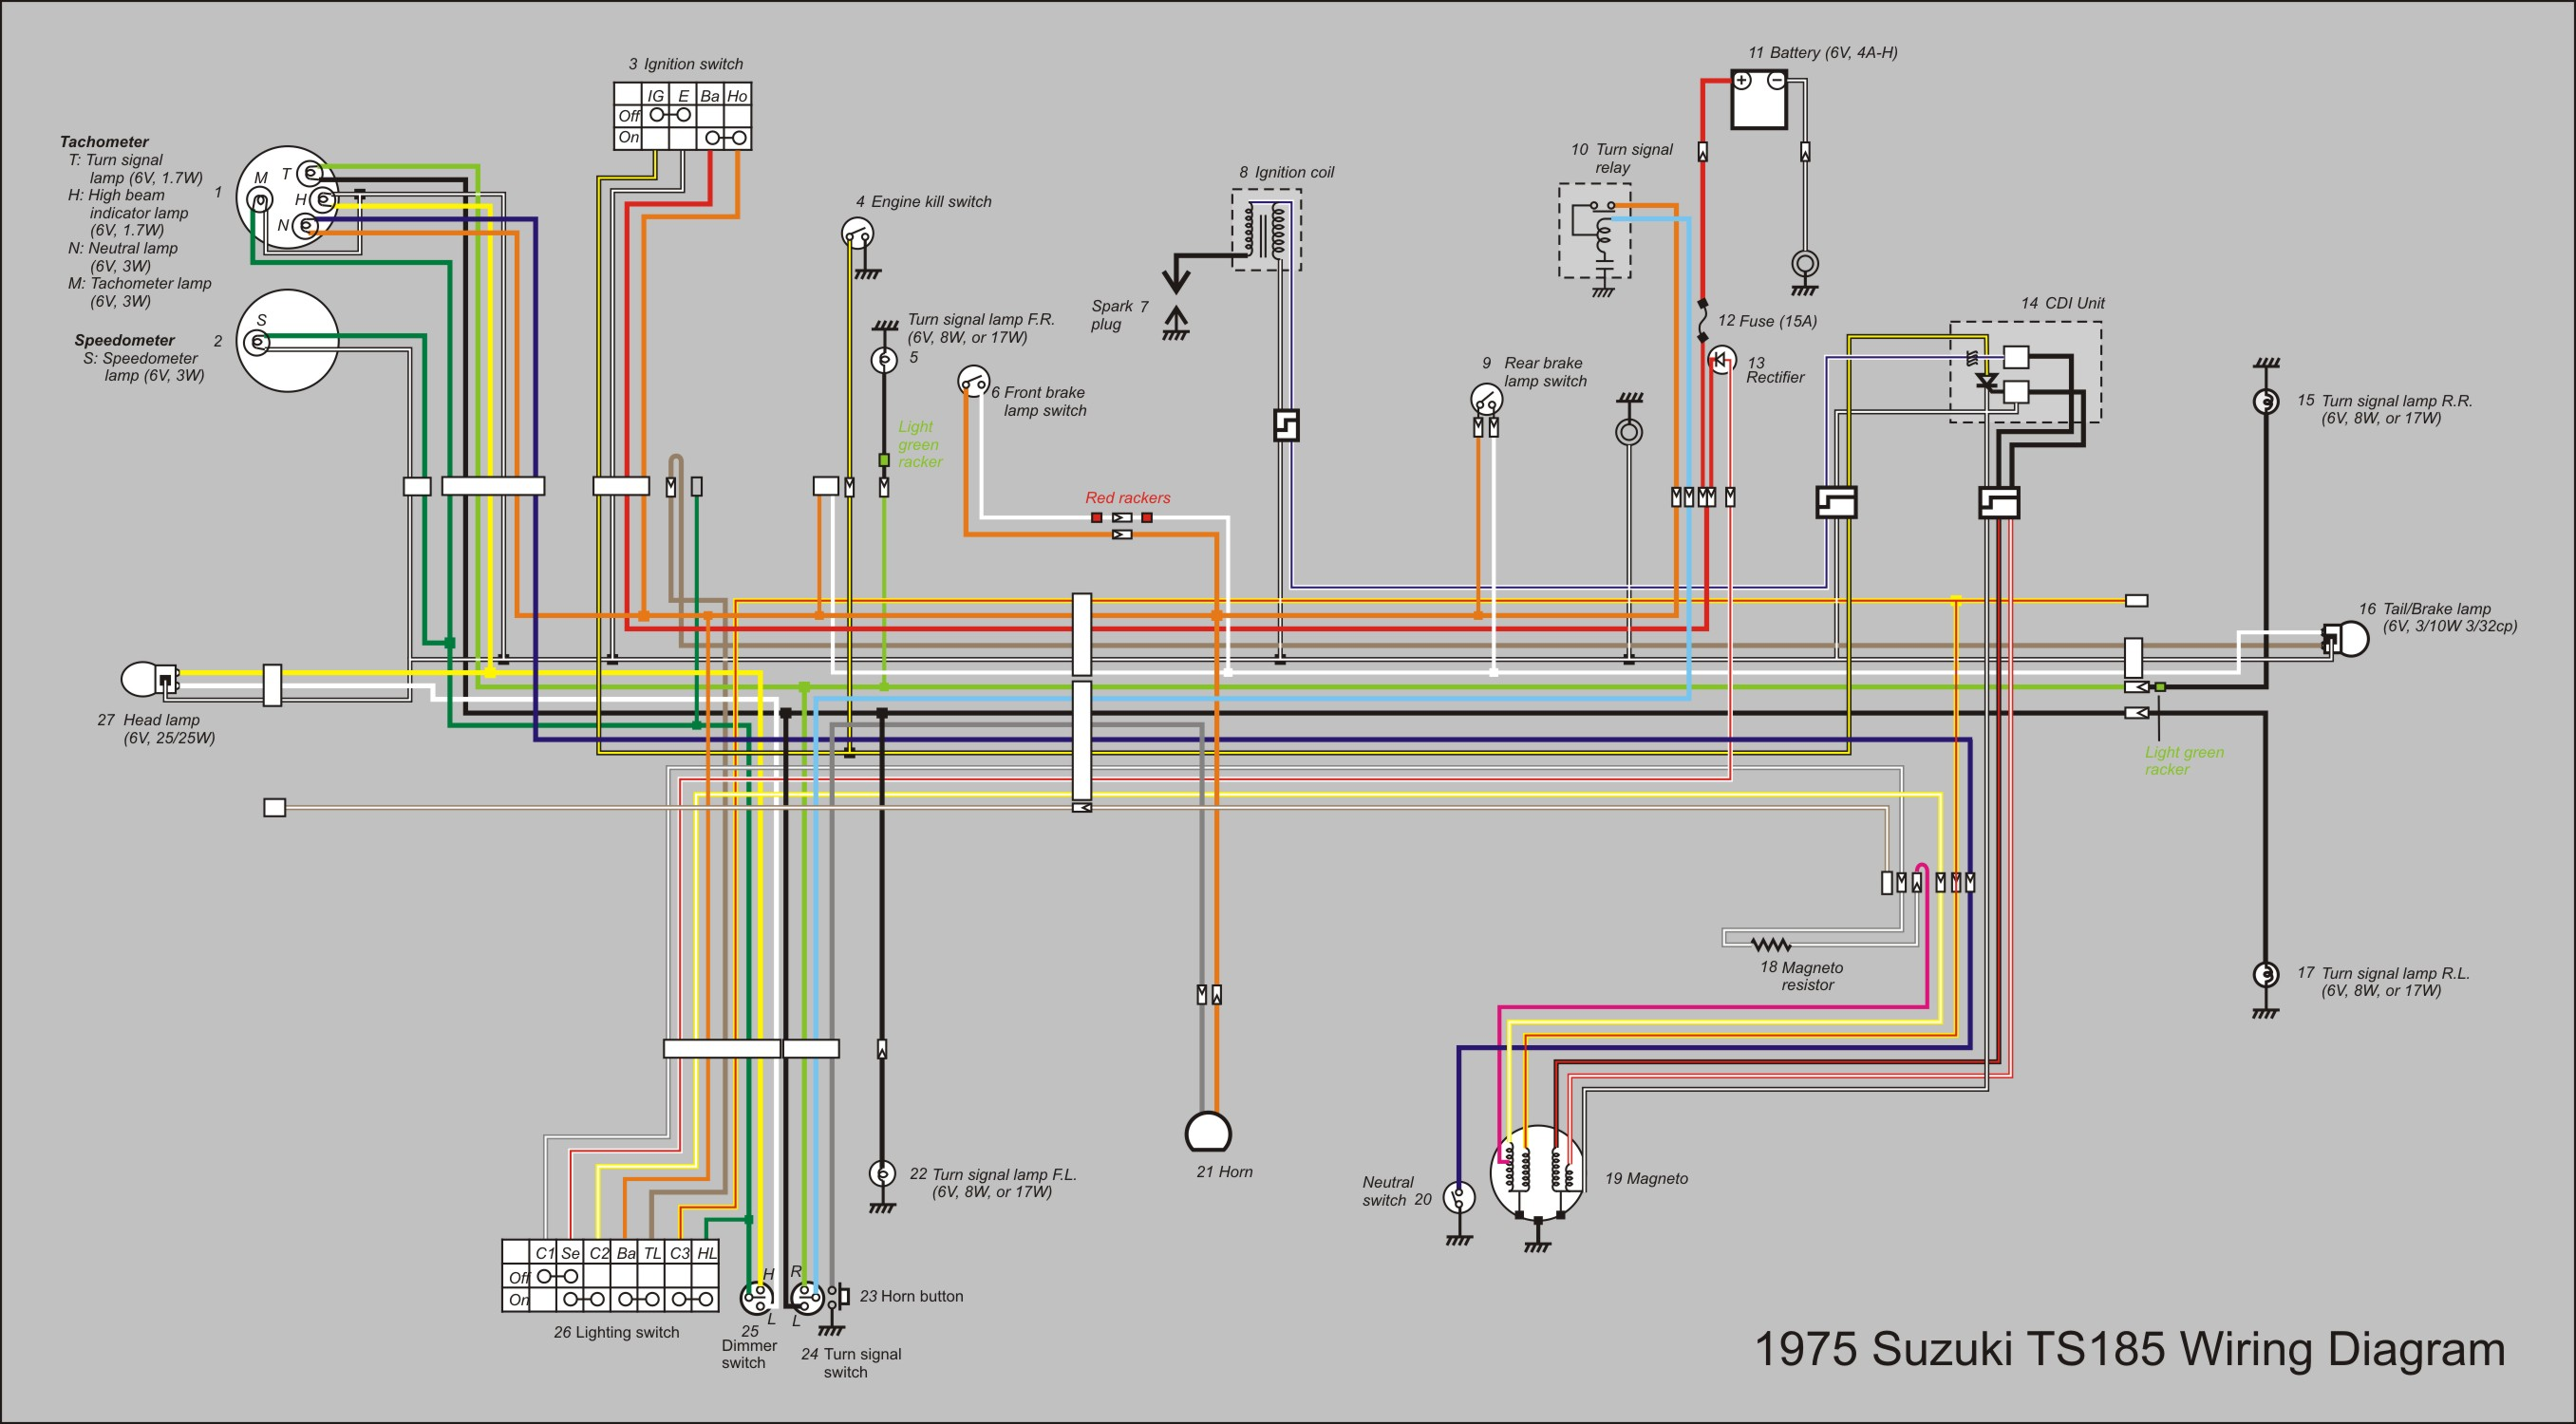 suzuki tf 125 wiring harness wiring diagram rh w24 auto technik schaefer de  suzuki swift wiring diagram